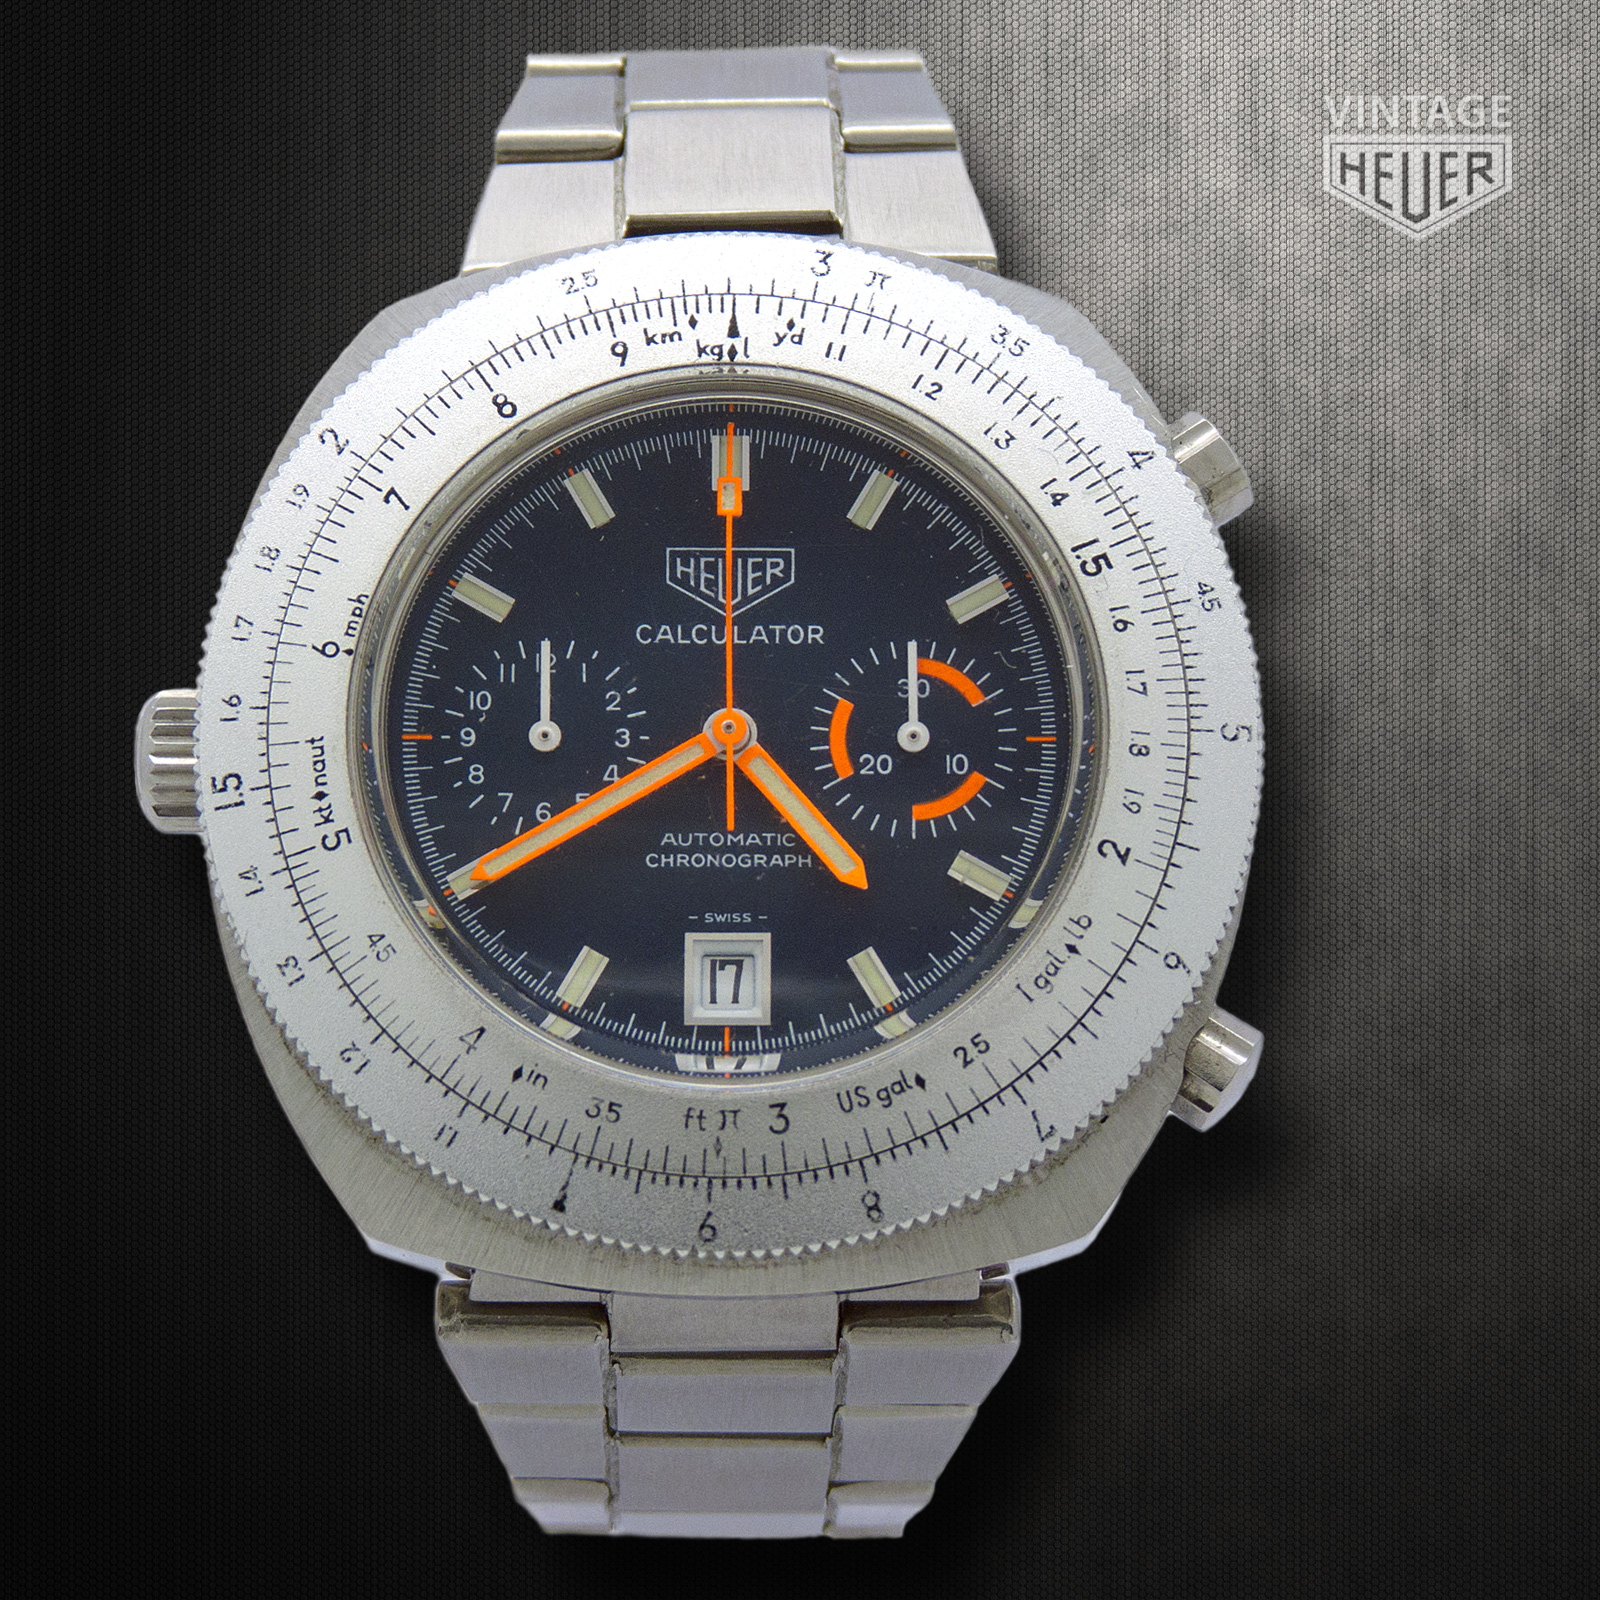 HEUER Calculator Automatic Chronograph Steel